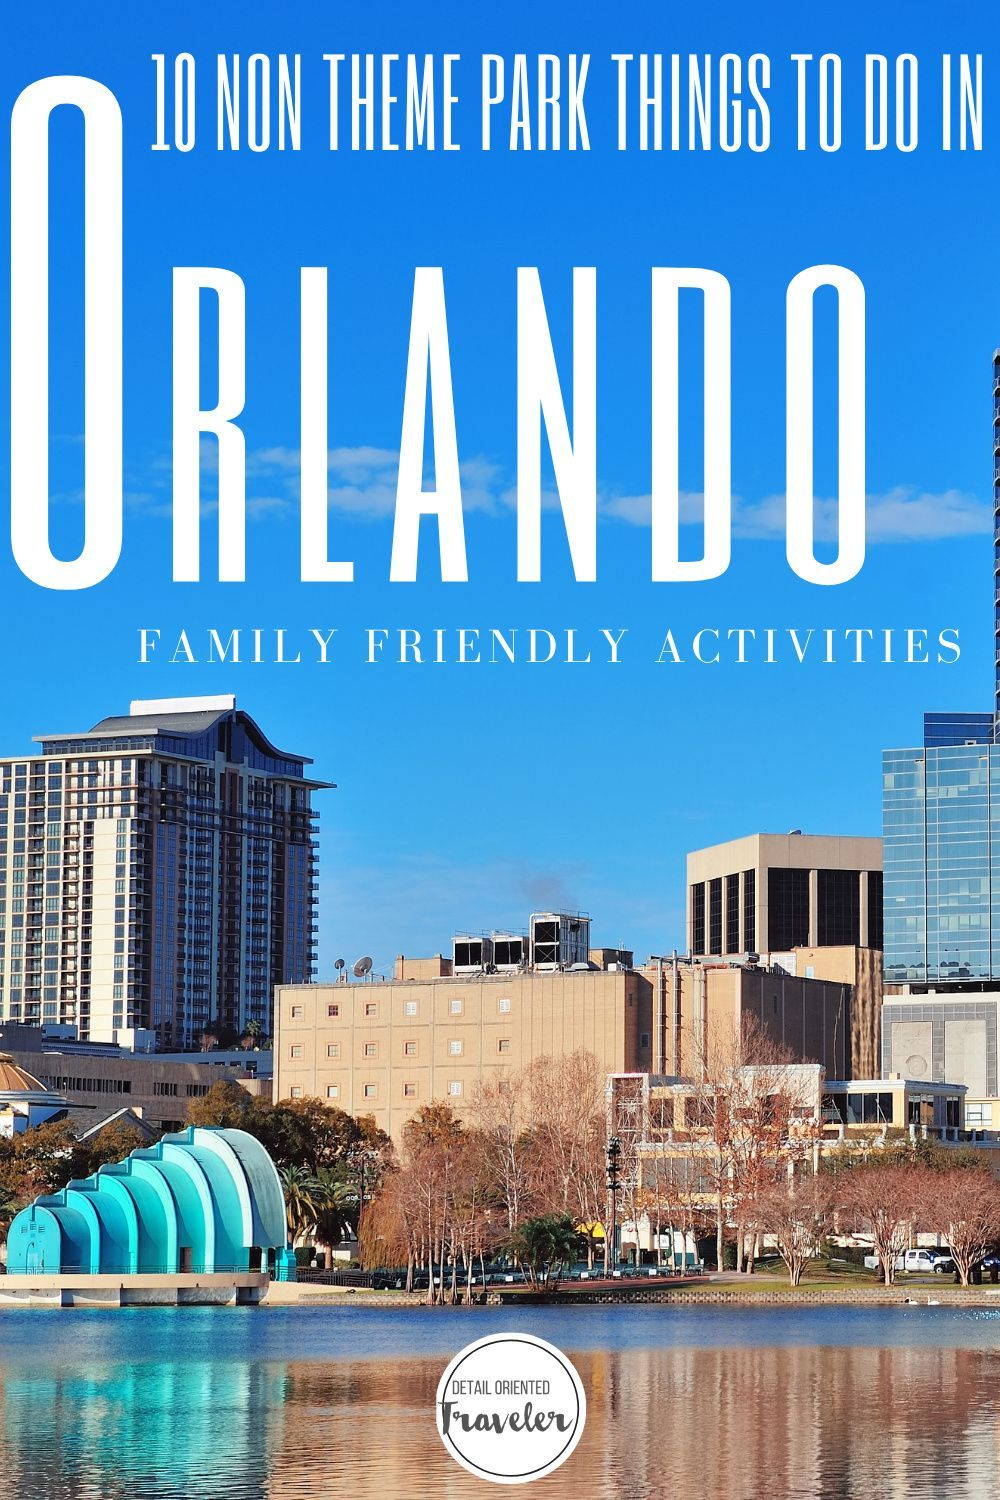 Family Friendly Things To Do In Orlando Other Than Theme Parks Detail Oriented Traveler Orlando Travel Best Family Vacation Destinations Family Friendly Travel